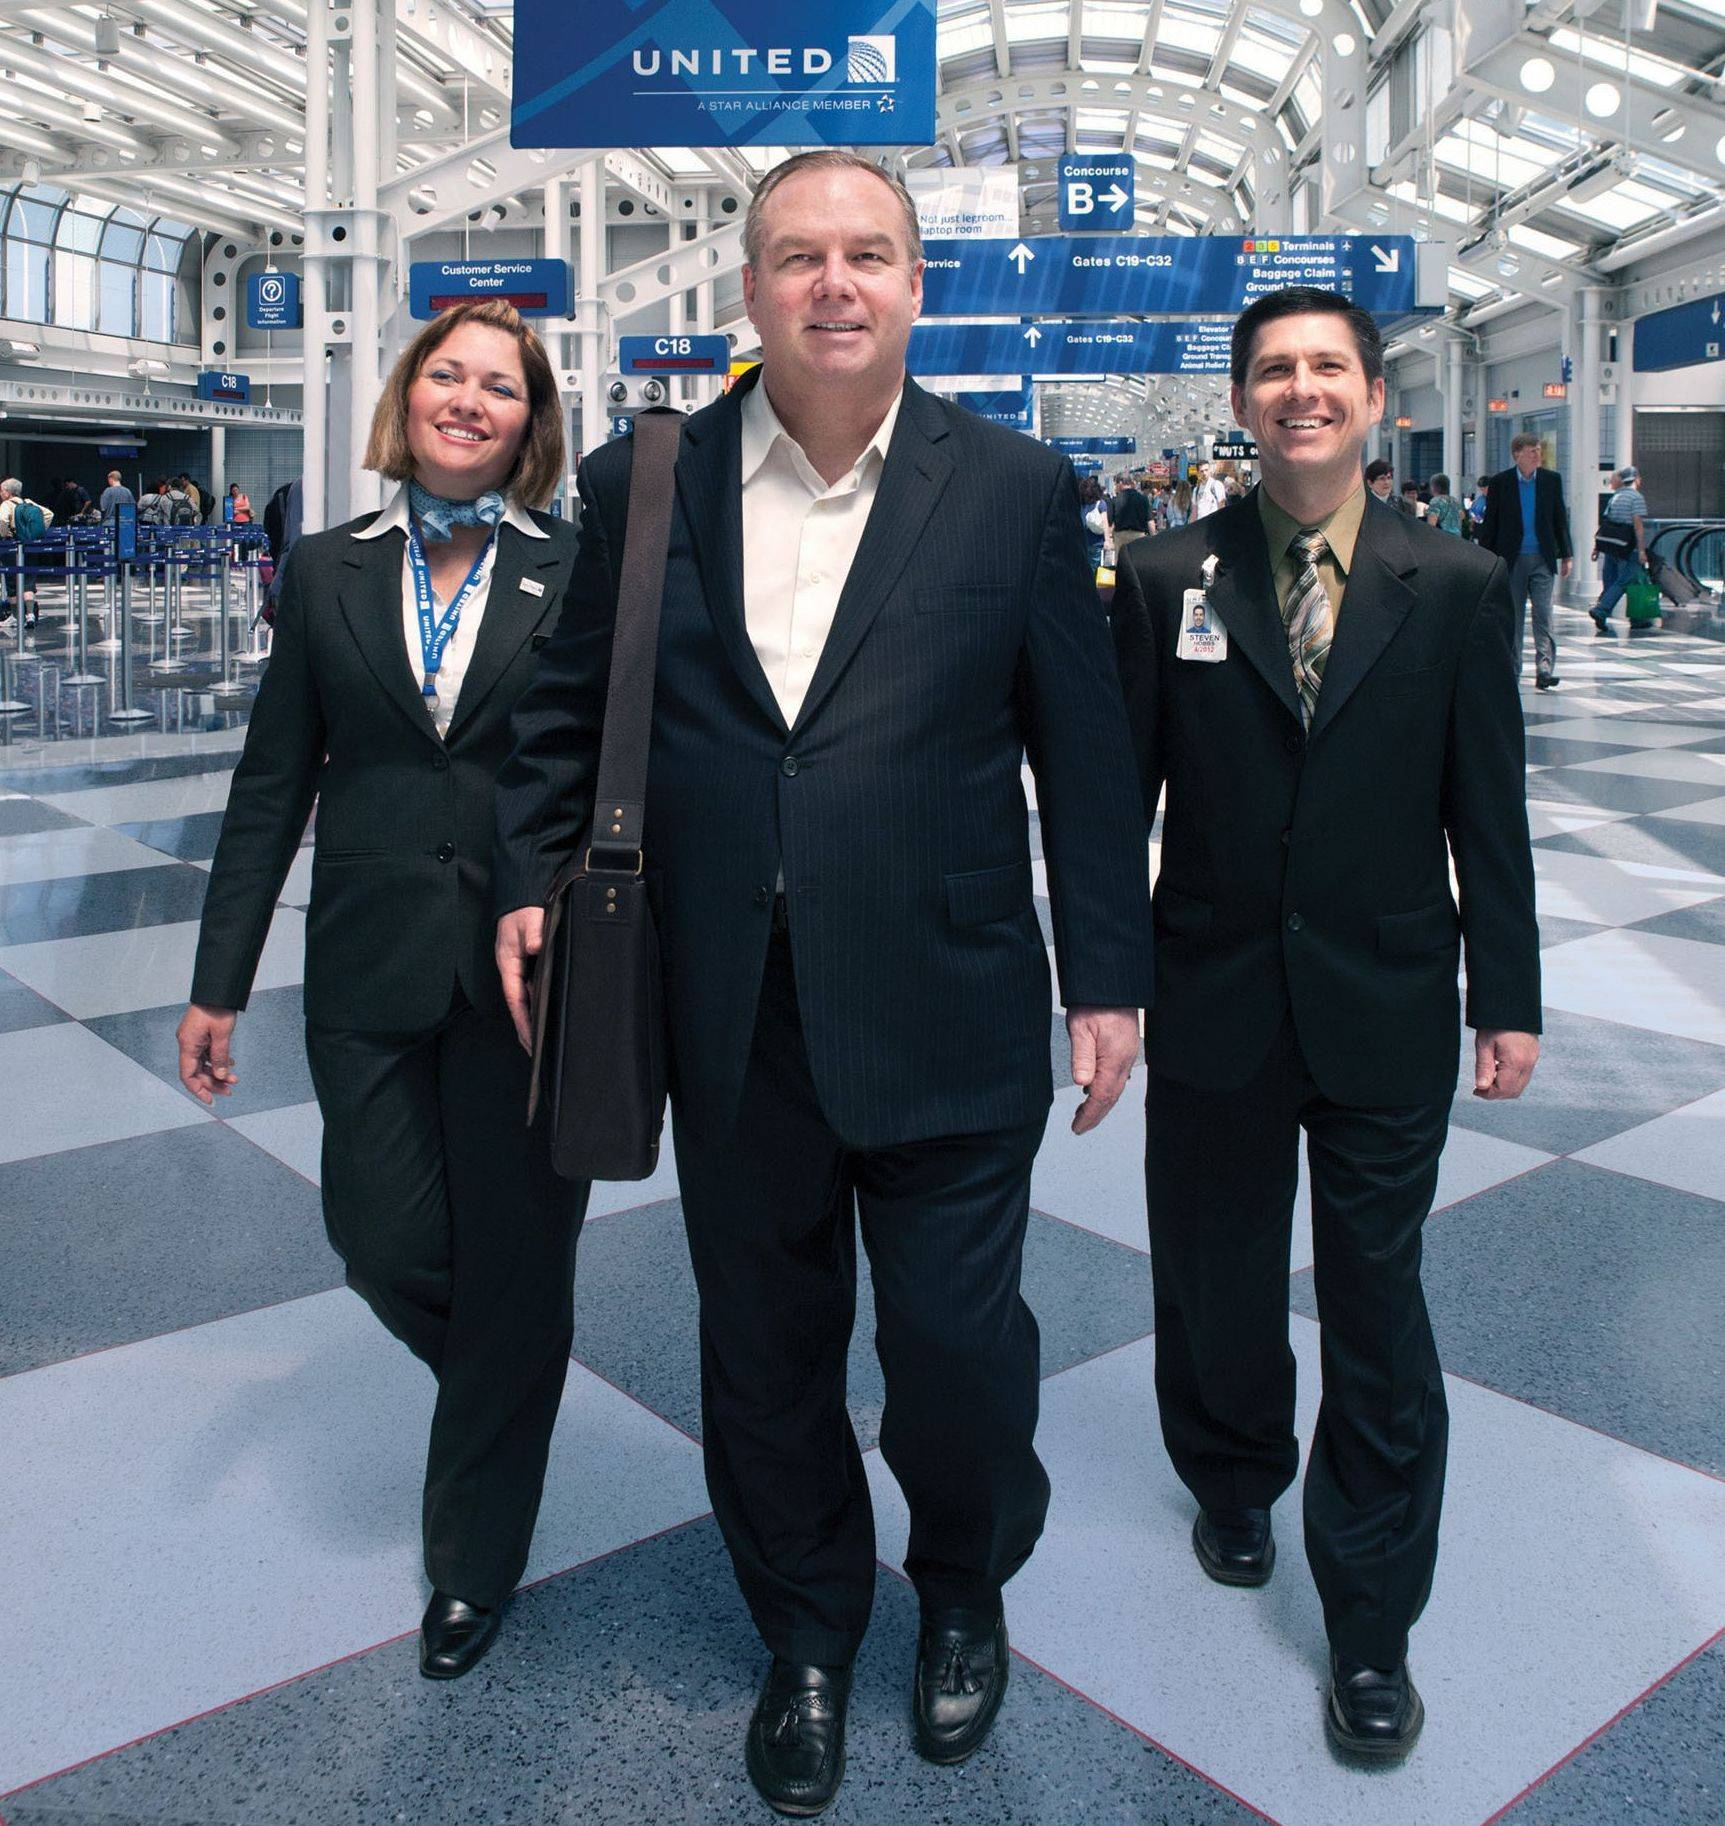 Tom Stuker of Bloomingdale, center, on Saturday will become the first customer ever to fly 10 million miles with United Airlines. When he lands at O�Hare at 5 p.m. he will be welcomed by family, friends and airline officials to celebrate his accomplishment.